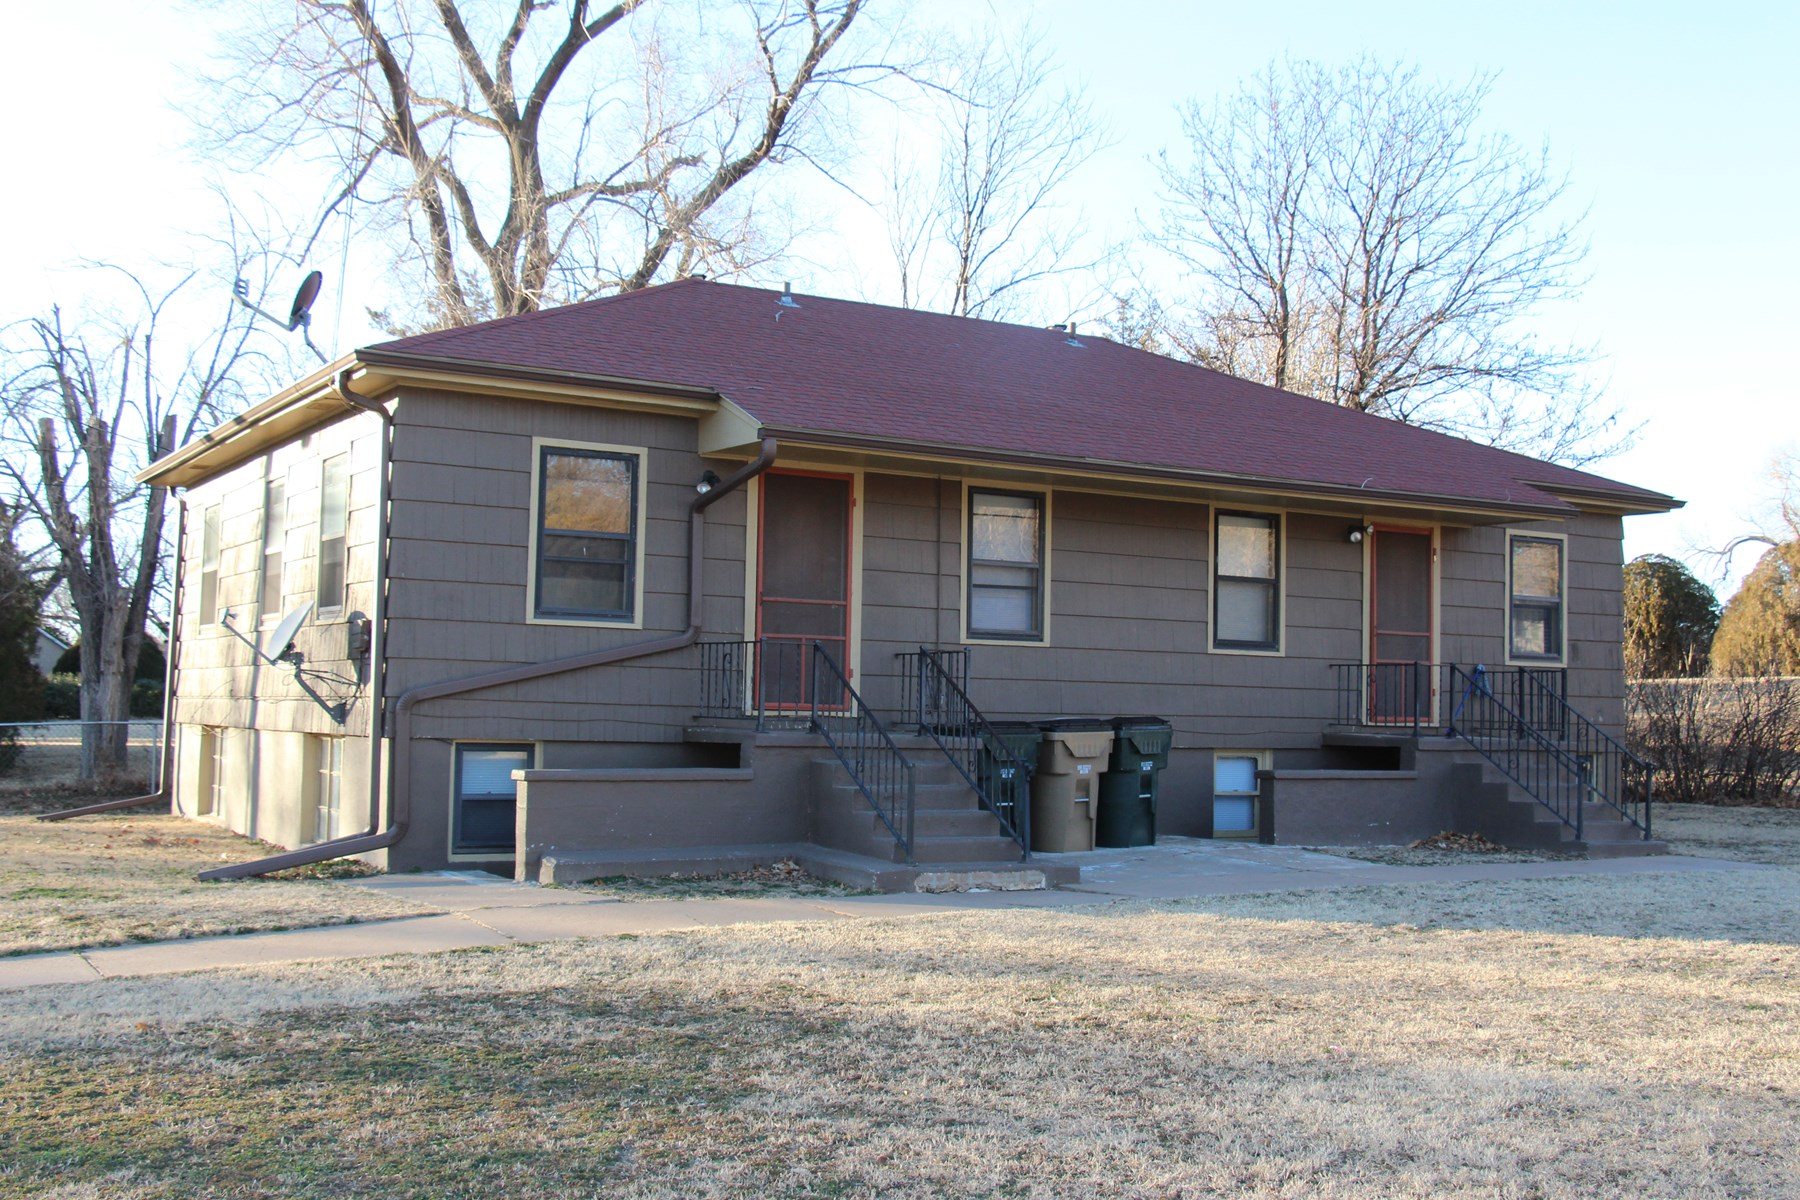 Income Property – Duplex For Sale - Medicine Lodge, Kansas